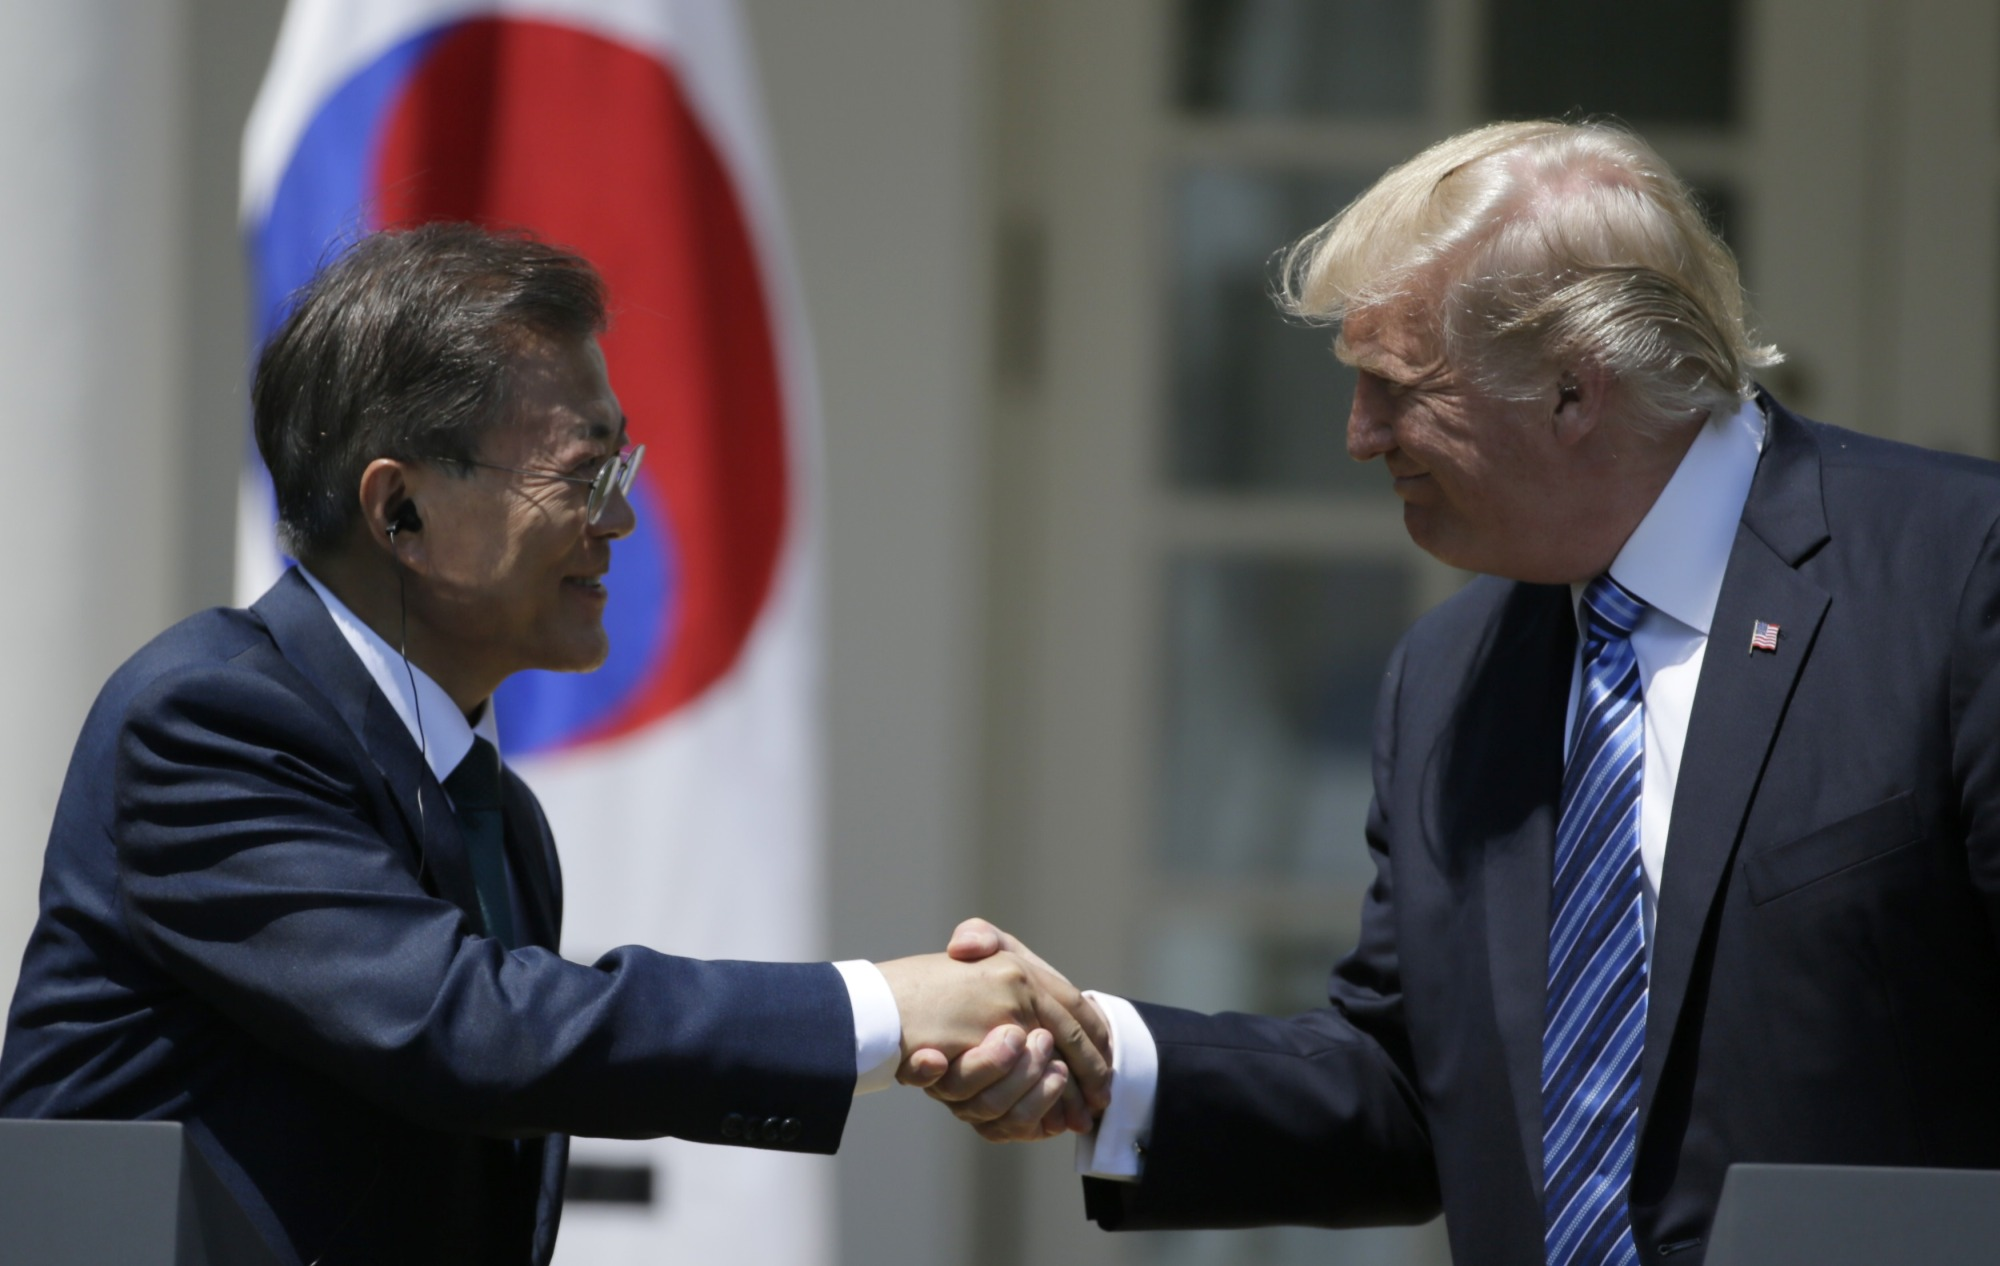 Trump Will Discuss South Korea Trade Deal With Senior Advisers